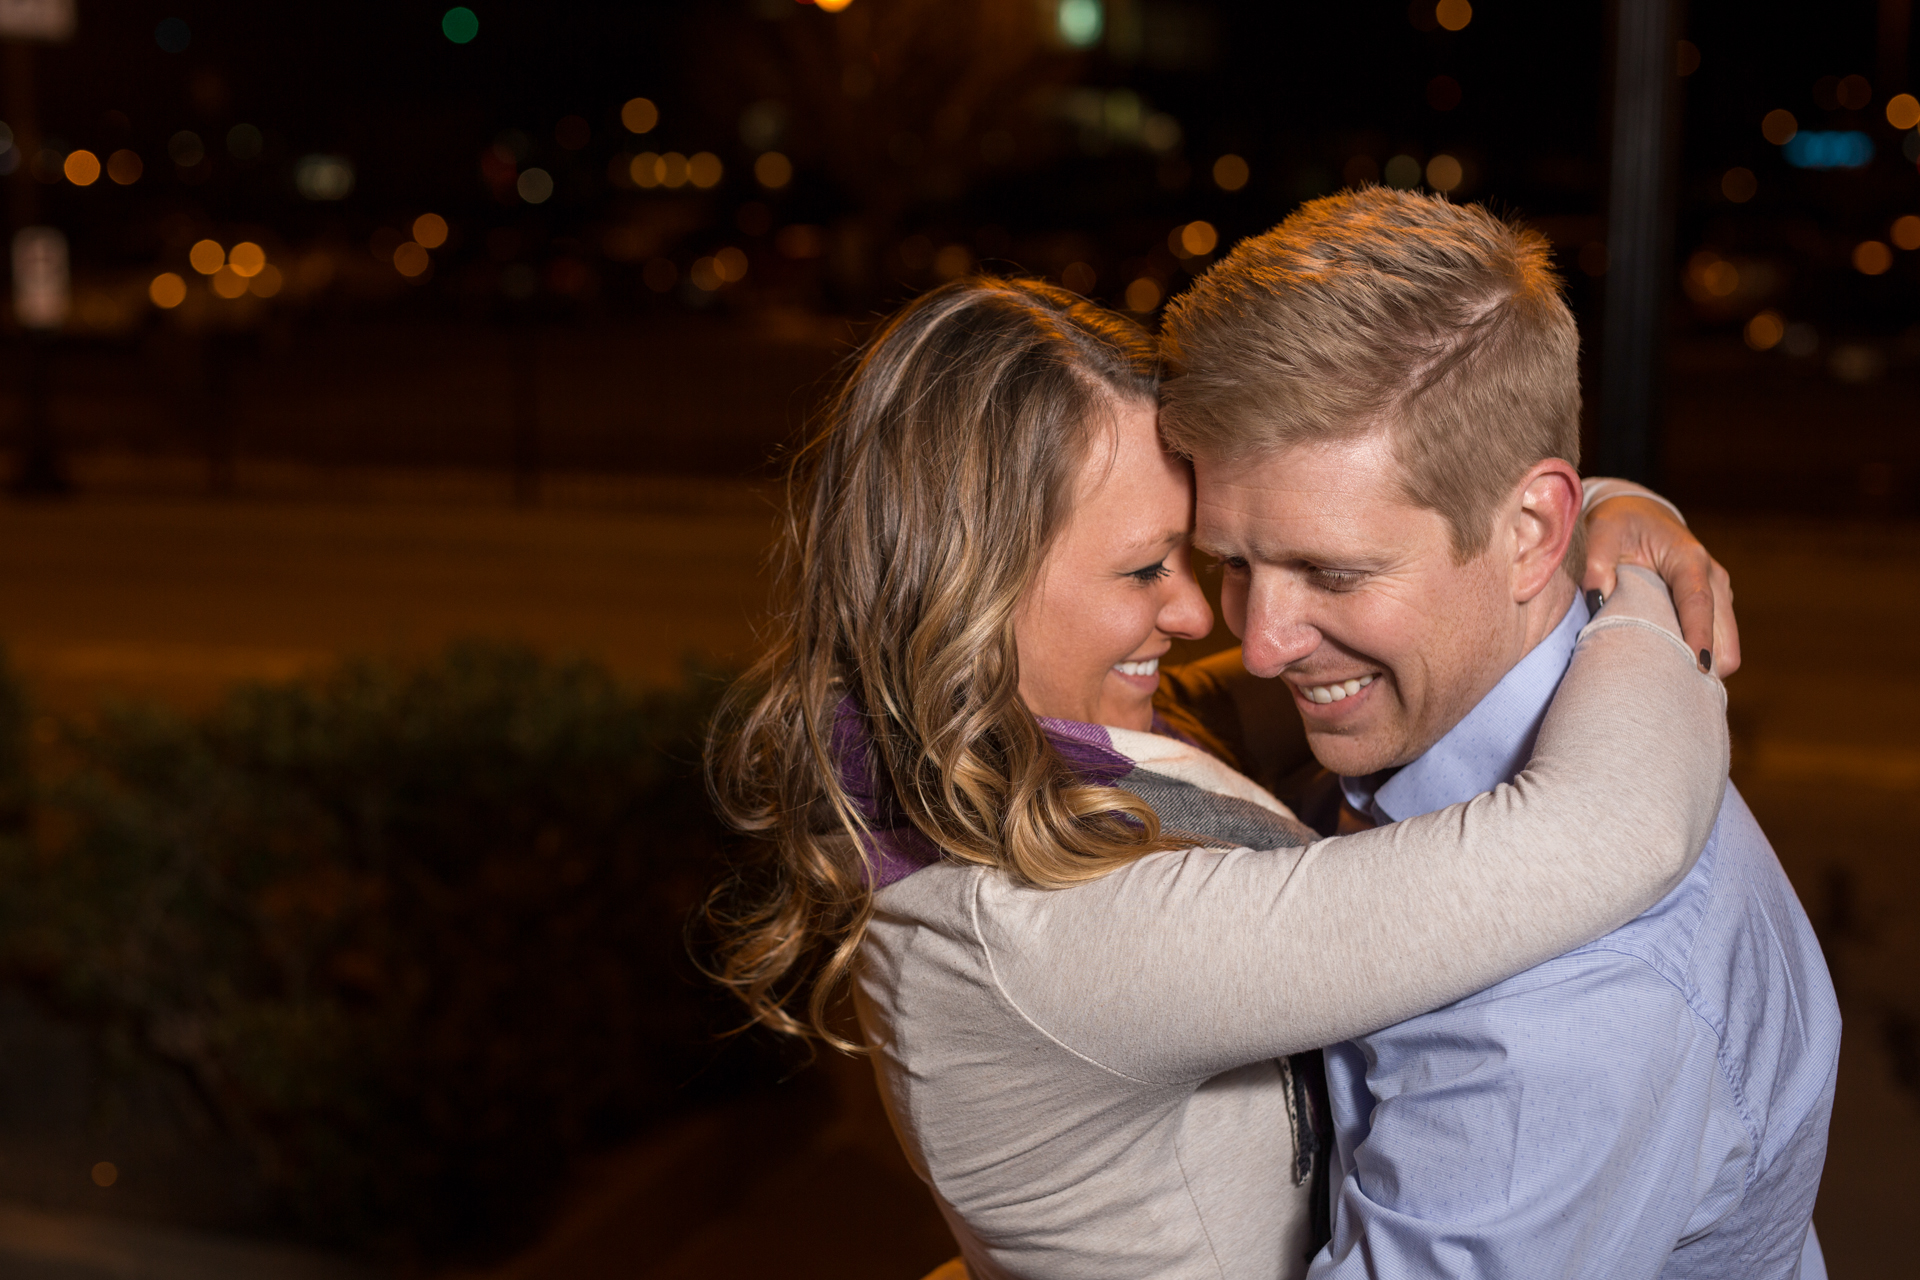 peoria illinois bloomington normal engagement pictures peoria riverfront wedding photographer-26.jpg